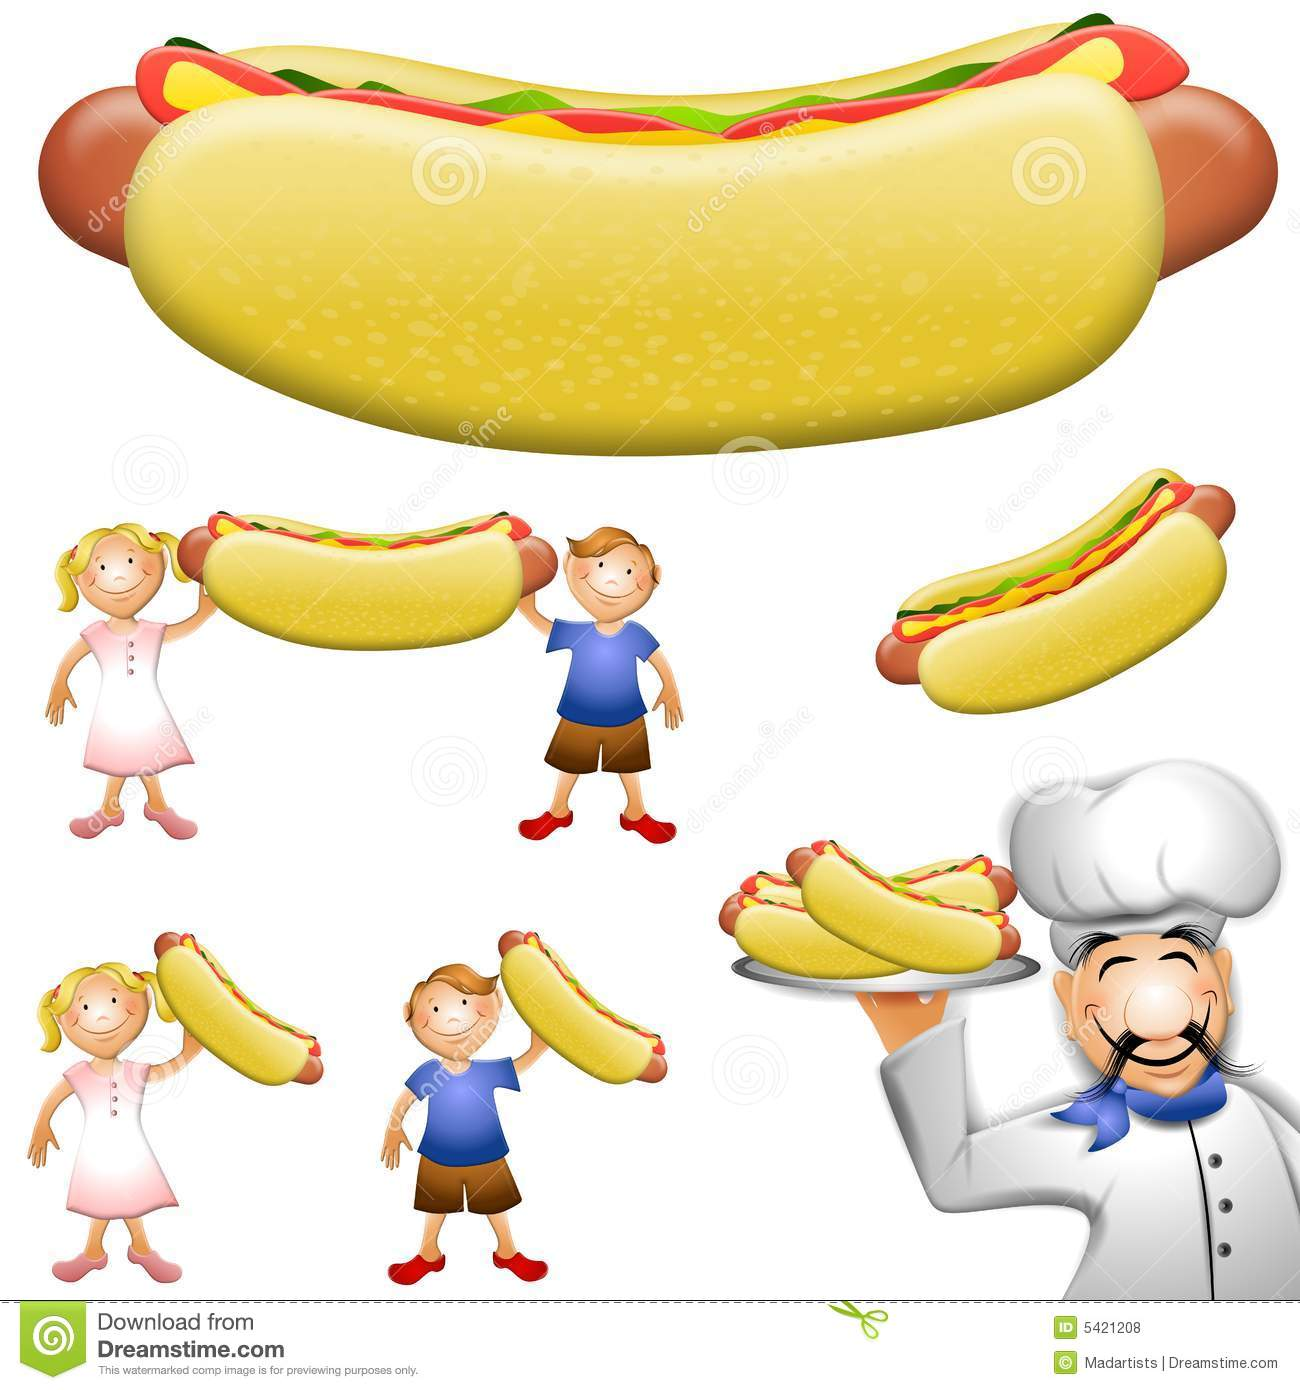 Cartoon Hotdog Clip Art Royalty Free Stock Photos - Image: 5421208